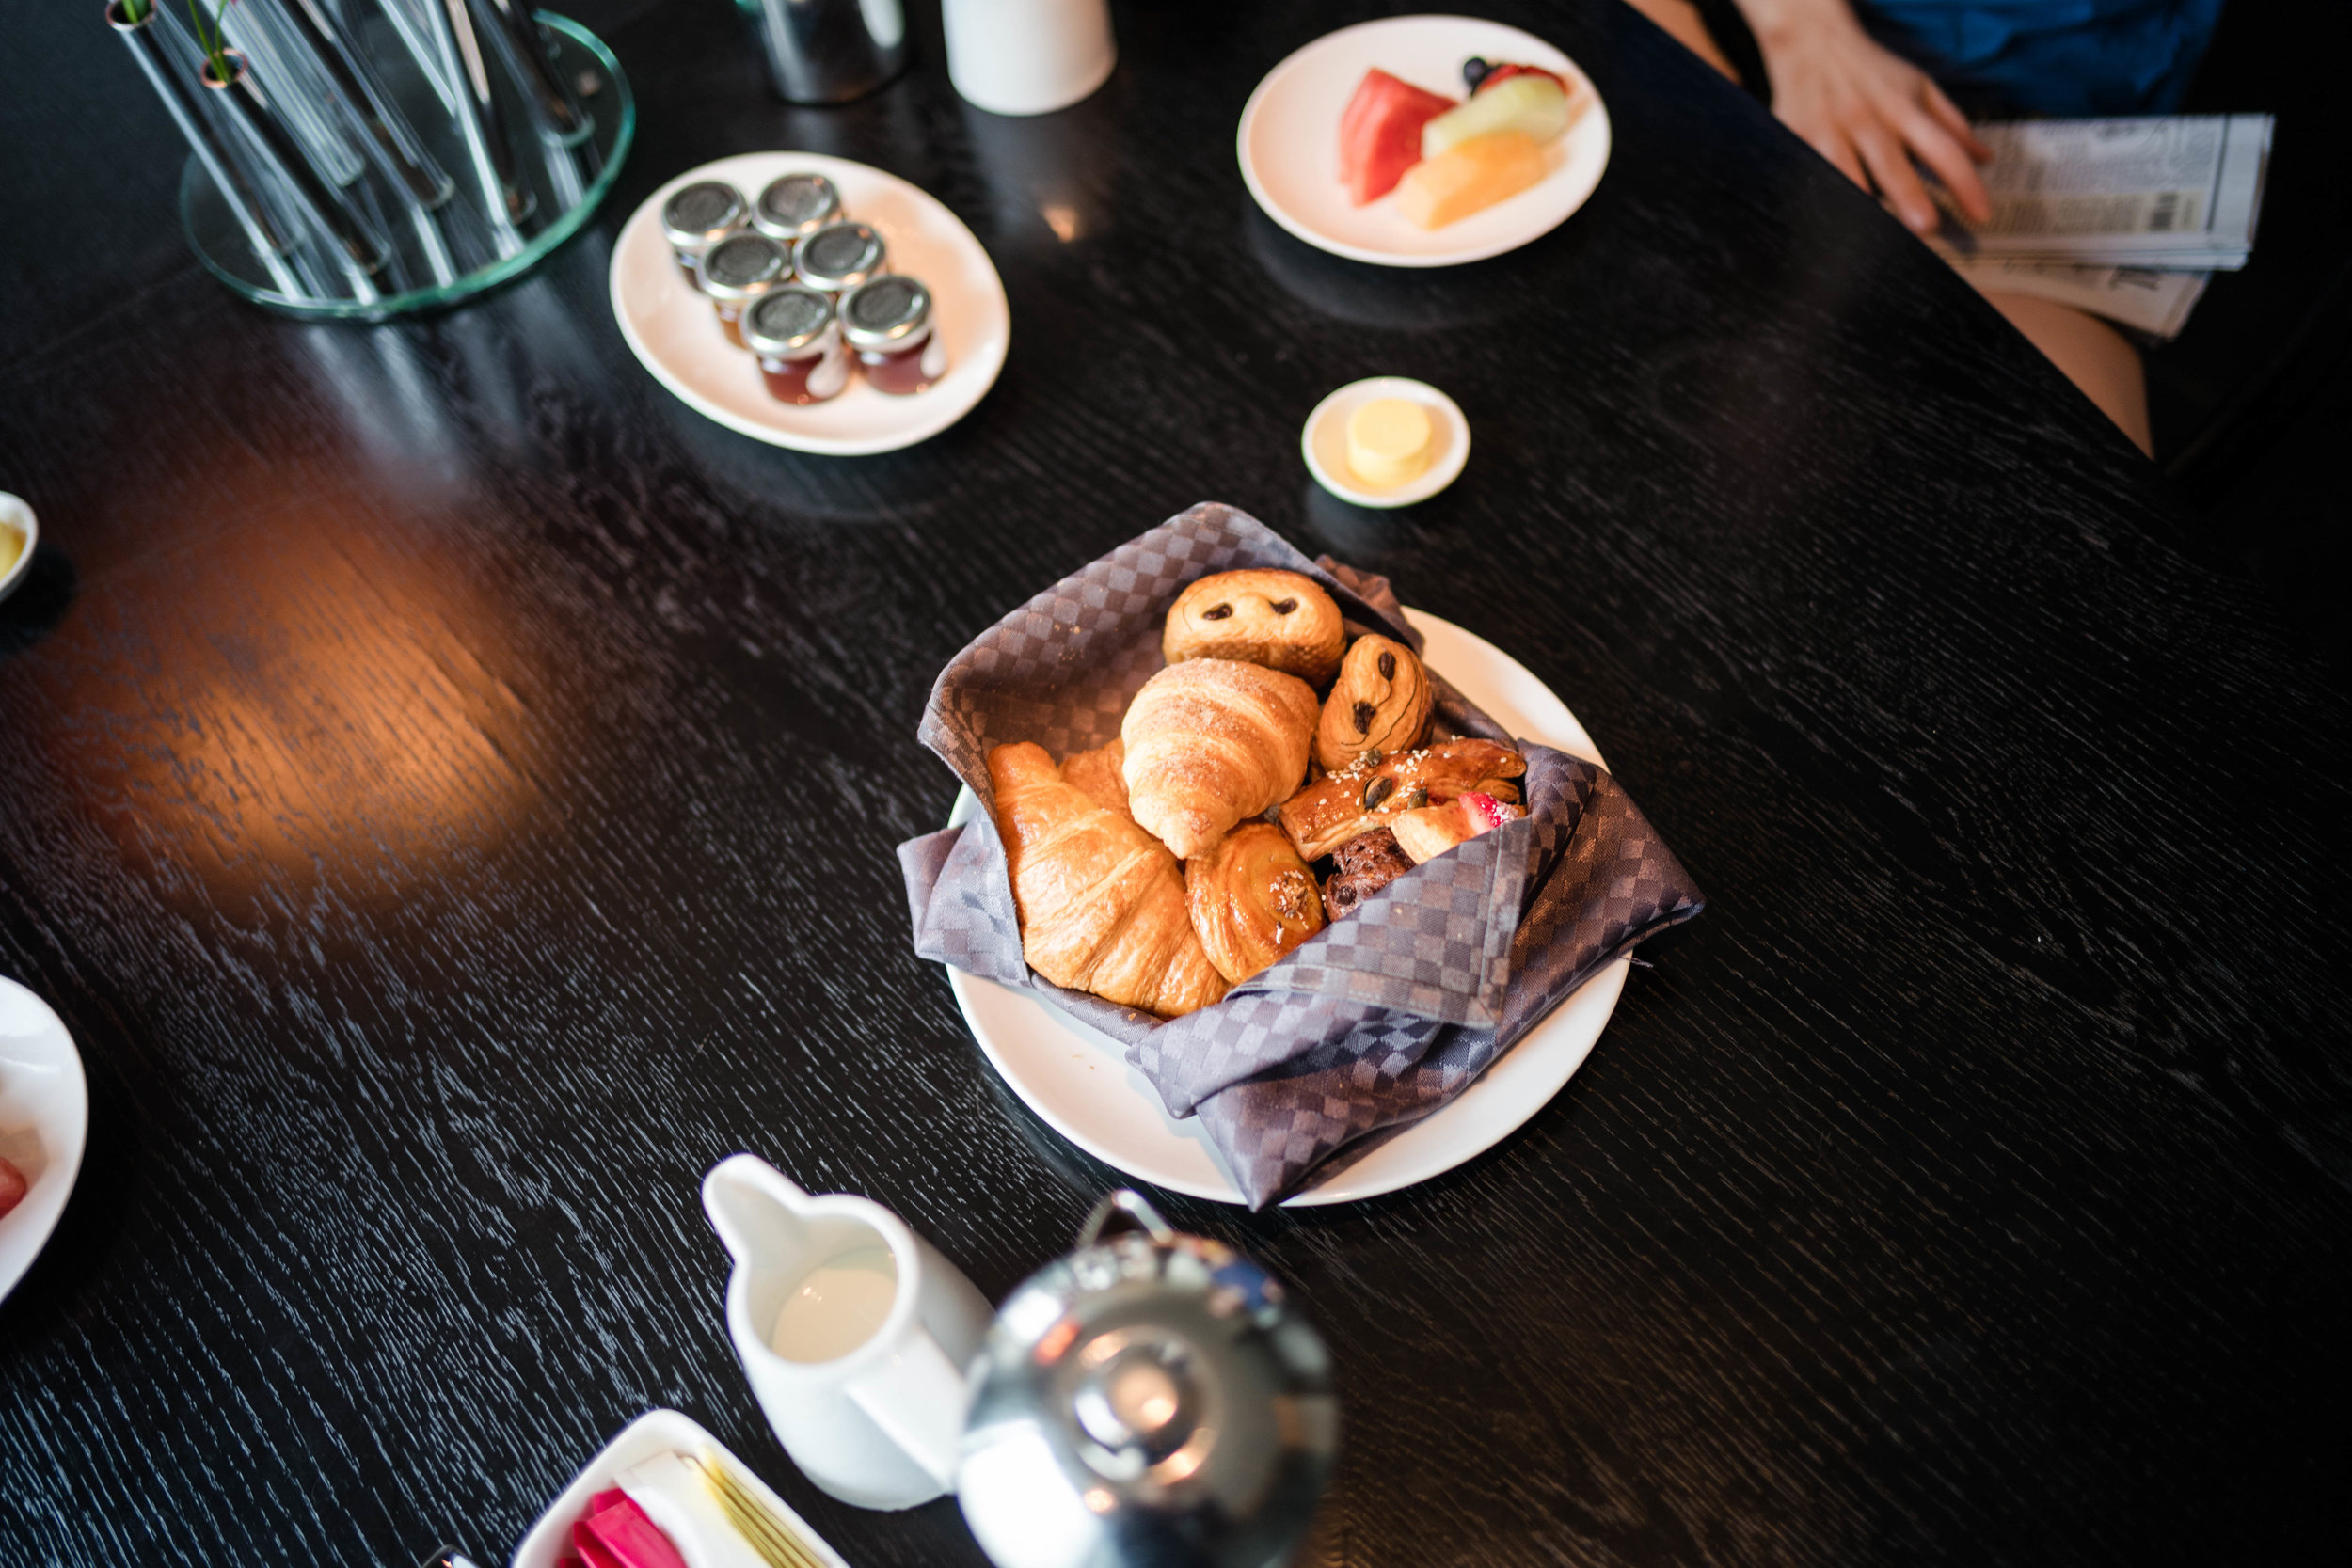 Continental breakfast basket of pastries. Leica 28mm f/1.4 Summilux